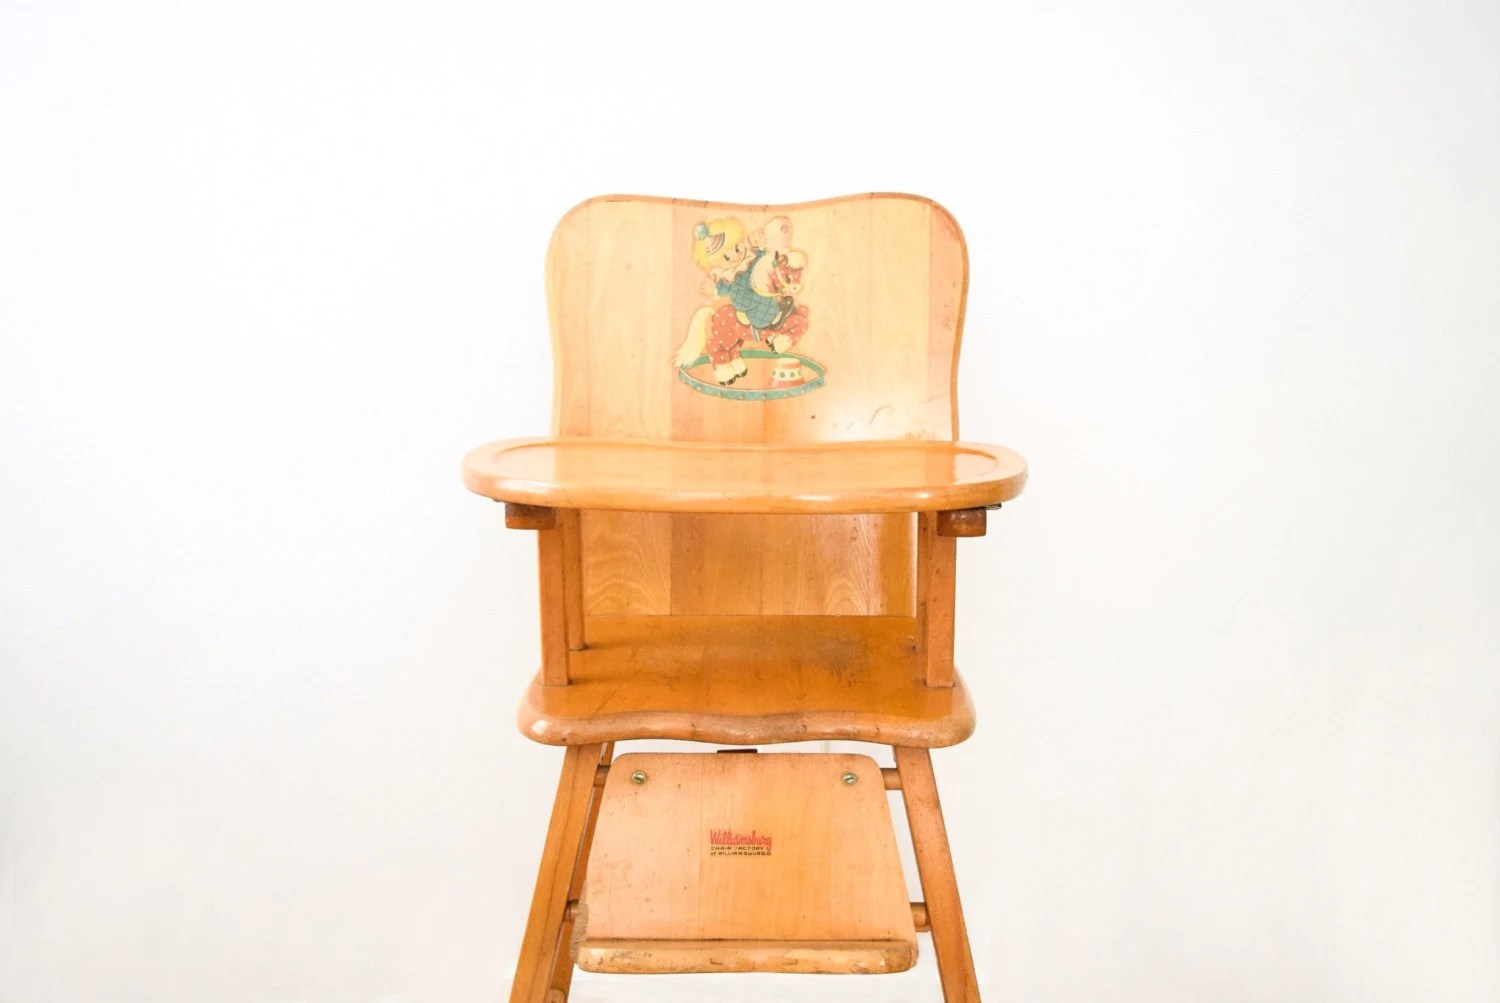 vintage wooden chairs foldable chair plans high antique baby